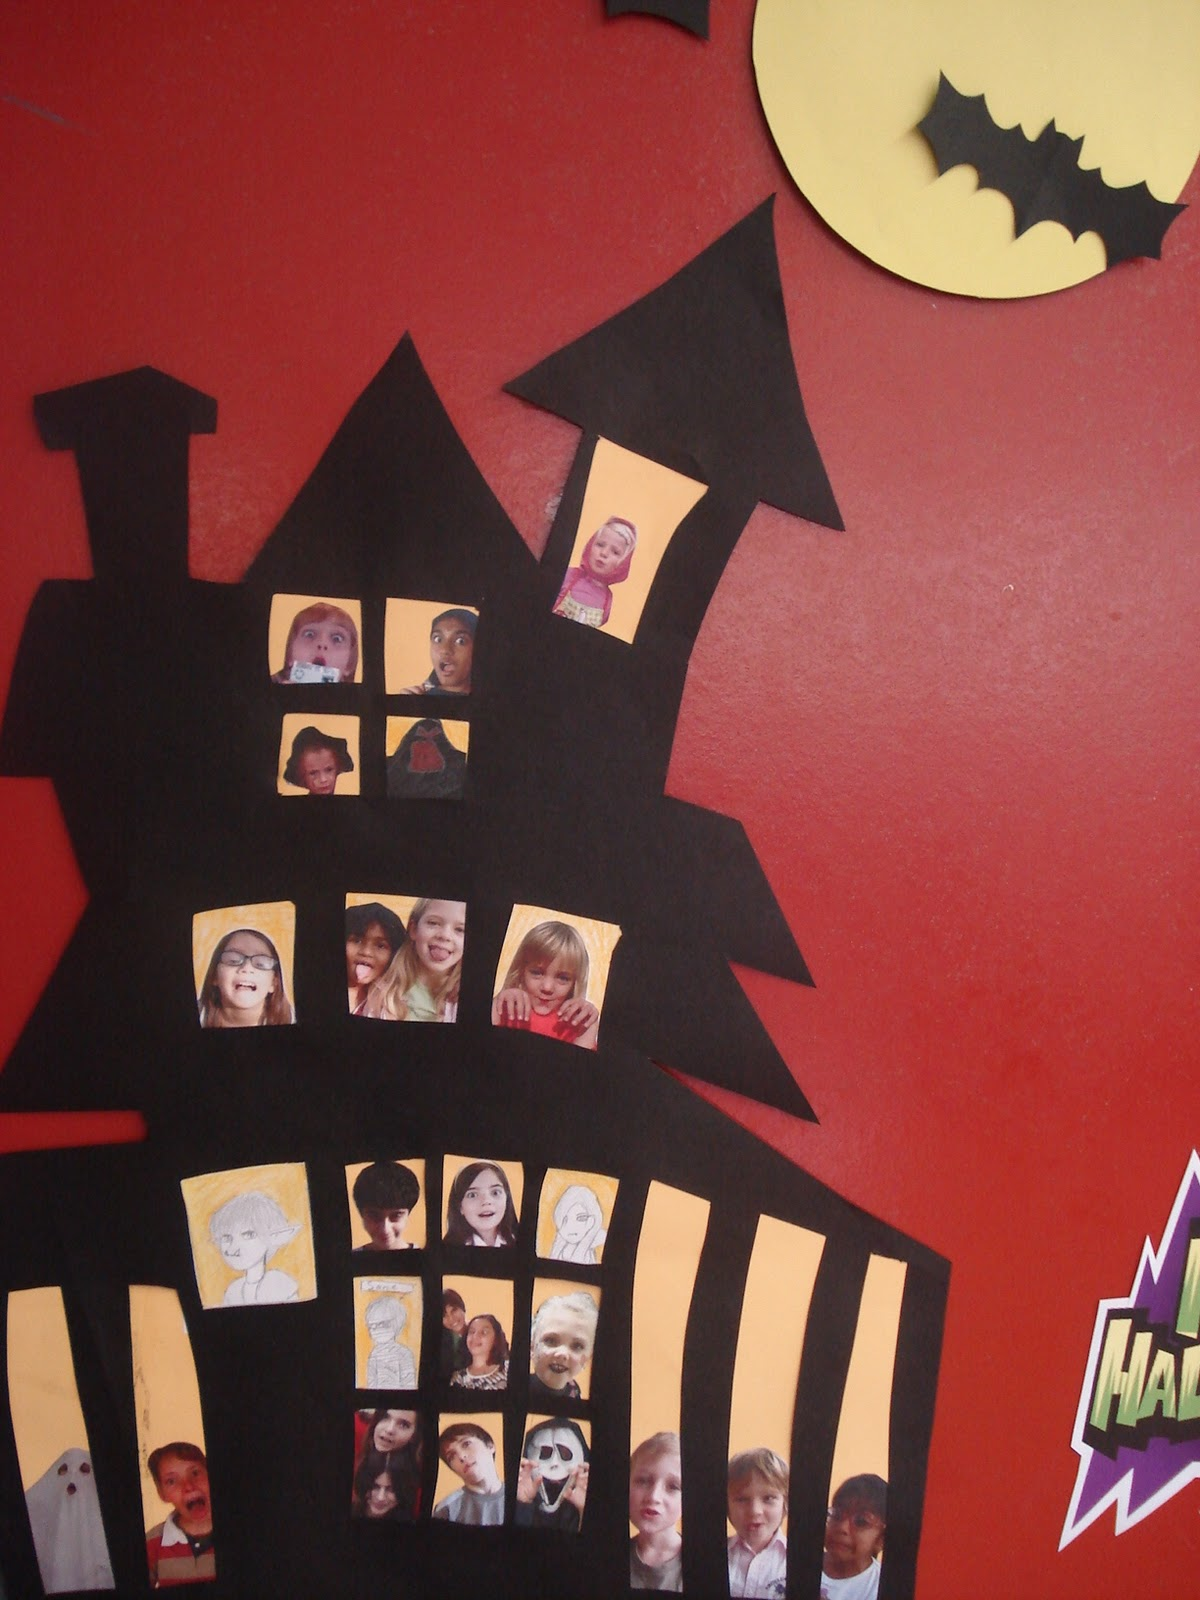 Design your own t shirt lesson plan - Happy Halloween